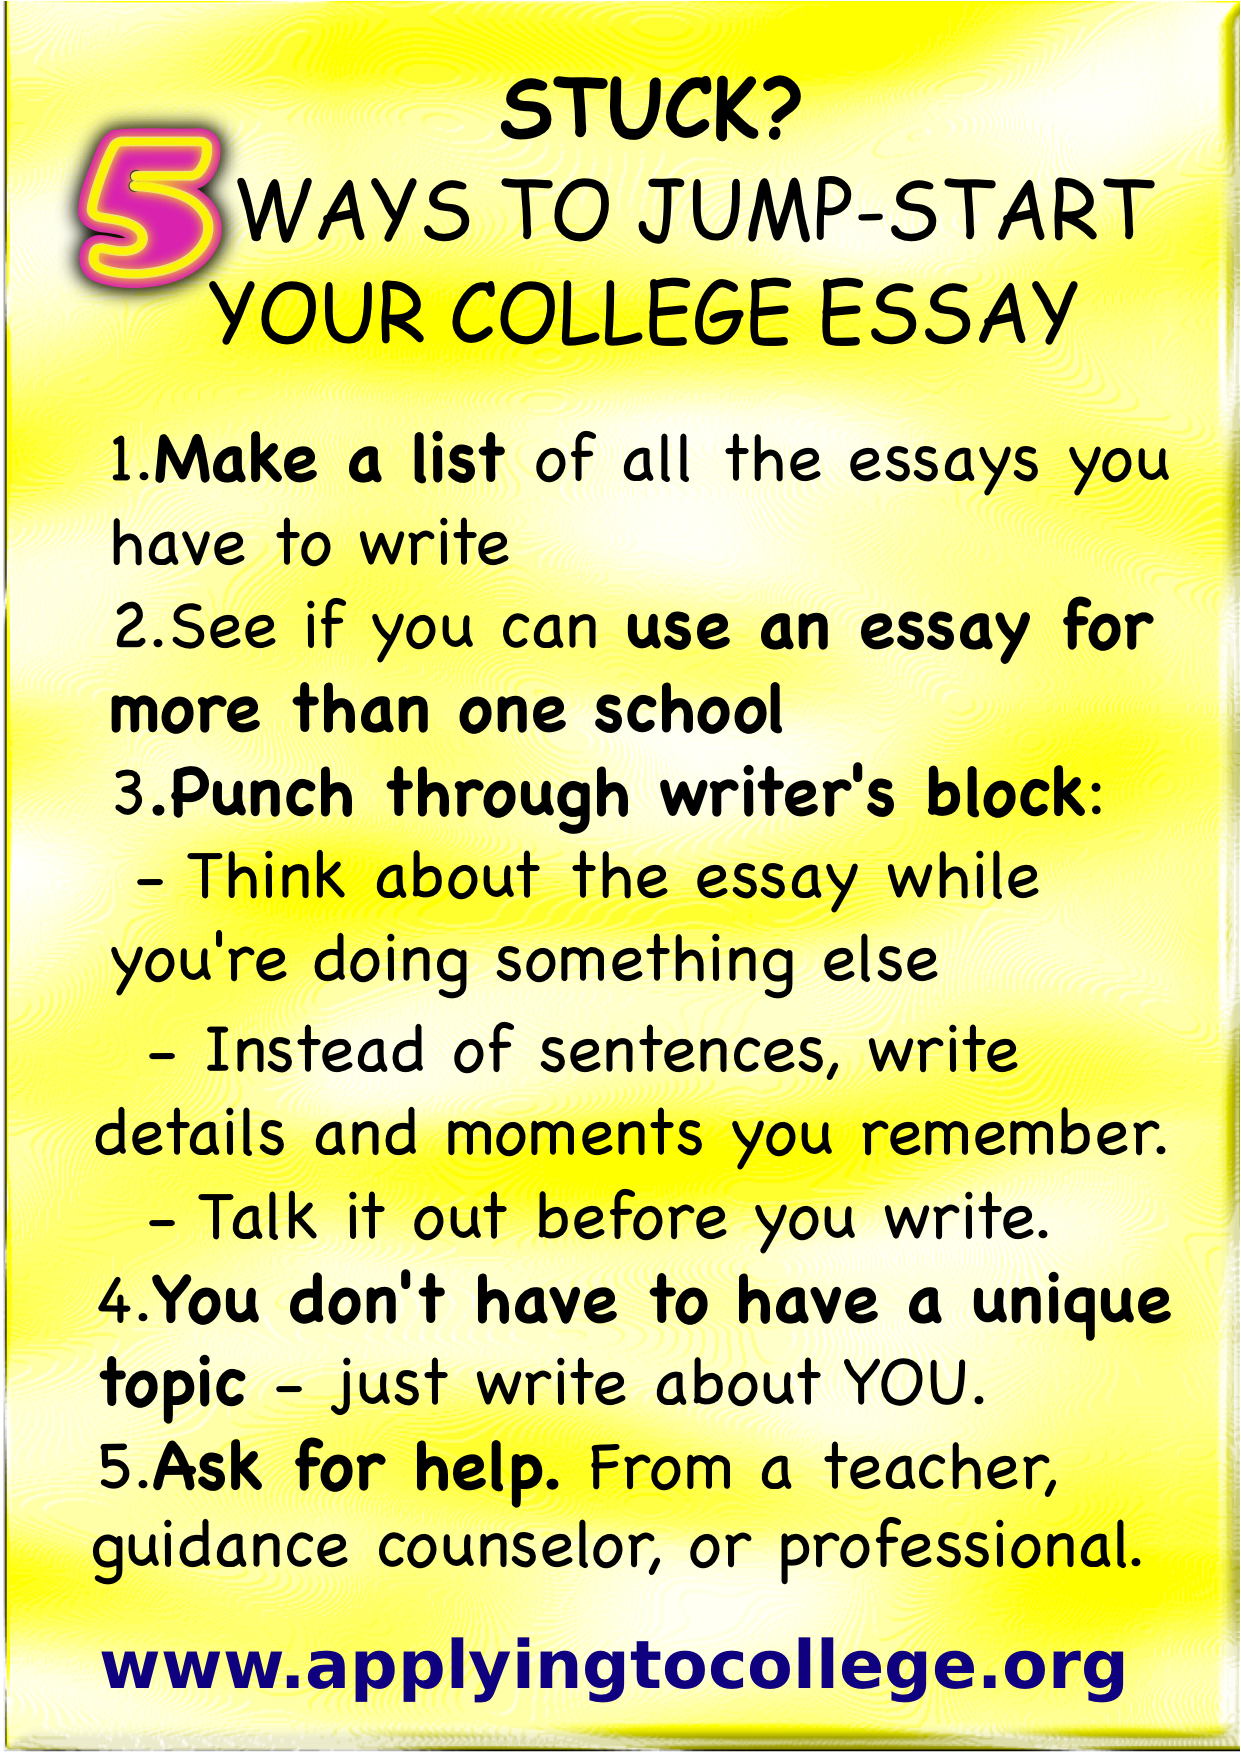 Stuck 5 Tips to JumpStart Your College Essay – College Application Essay